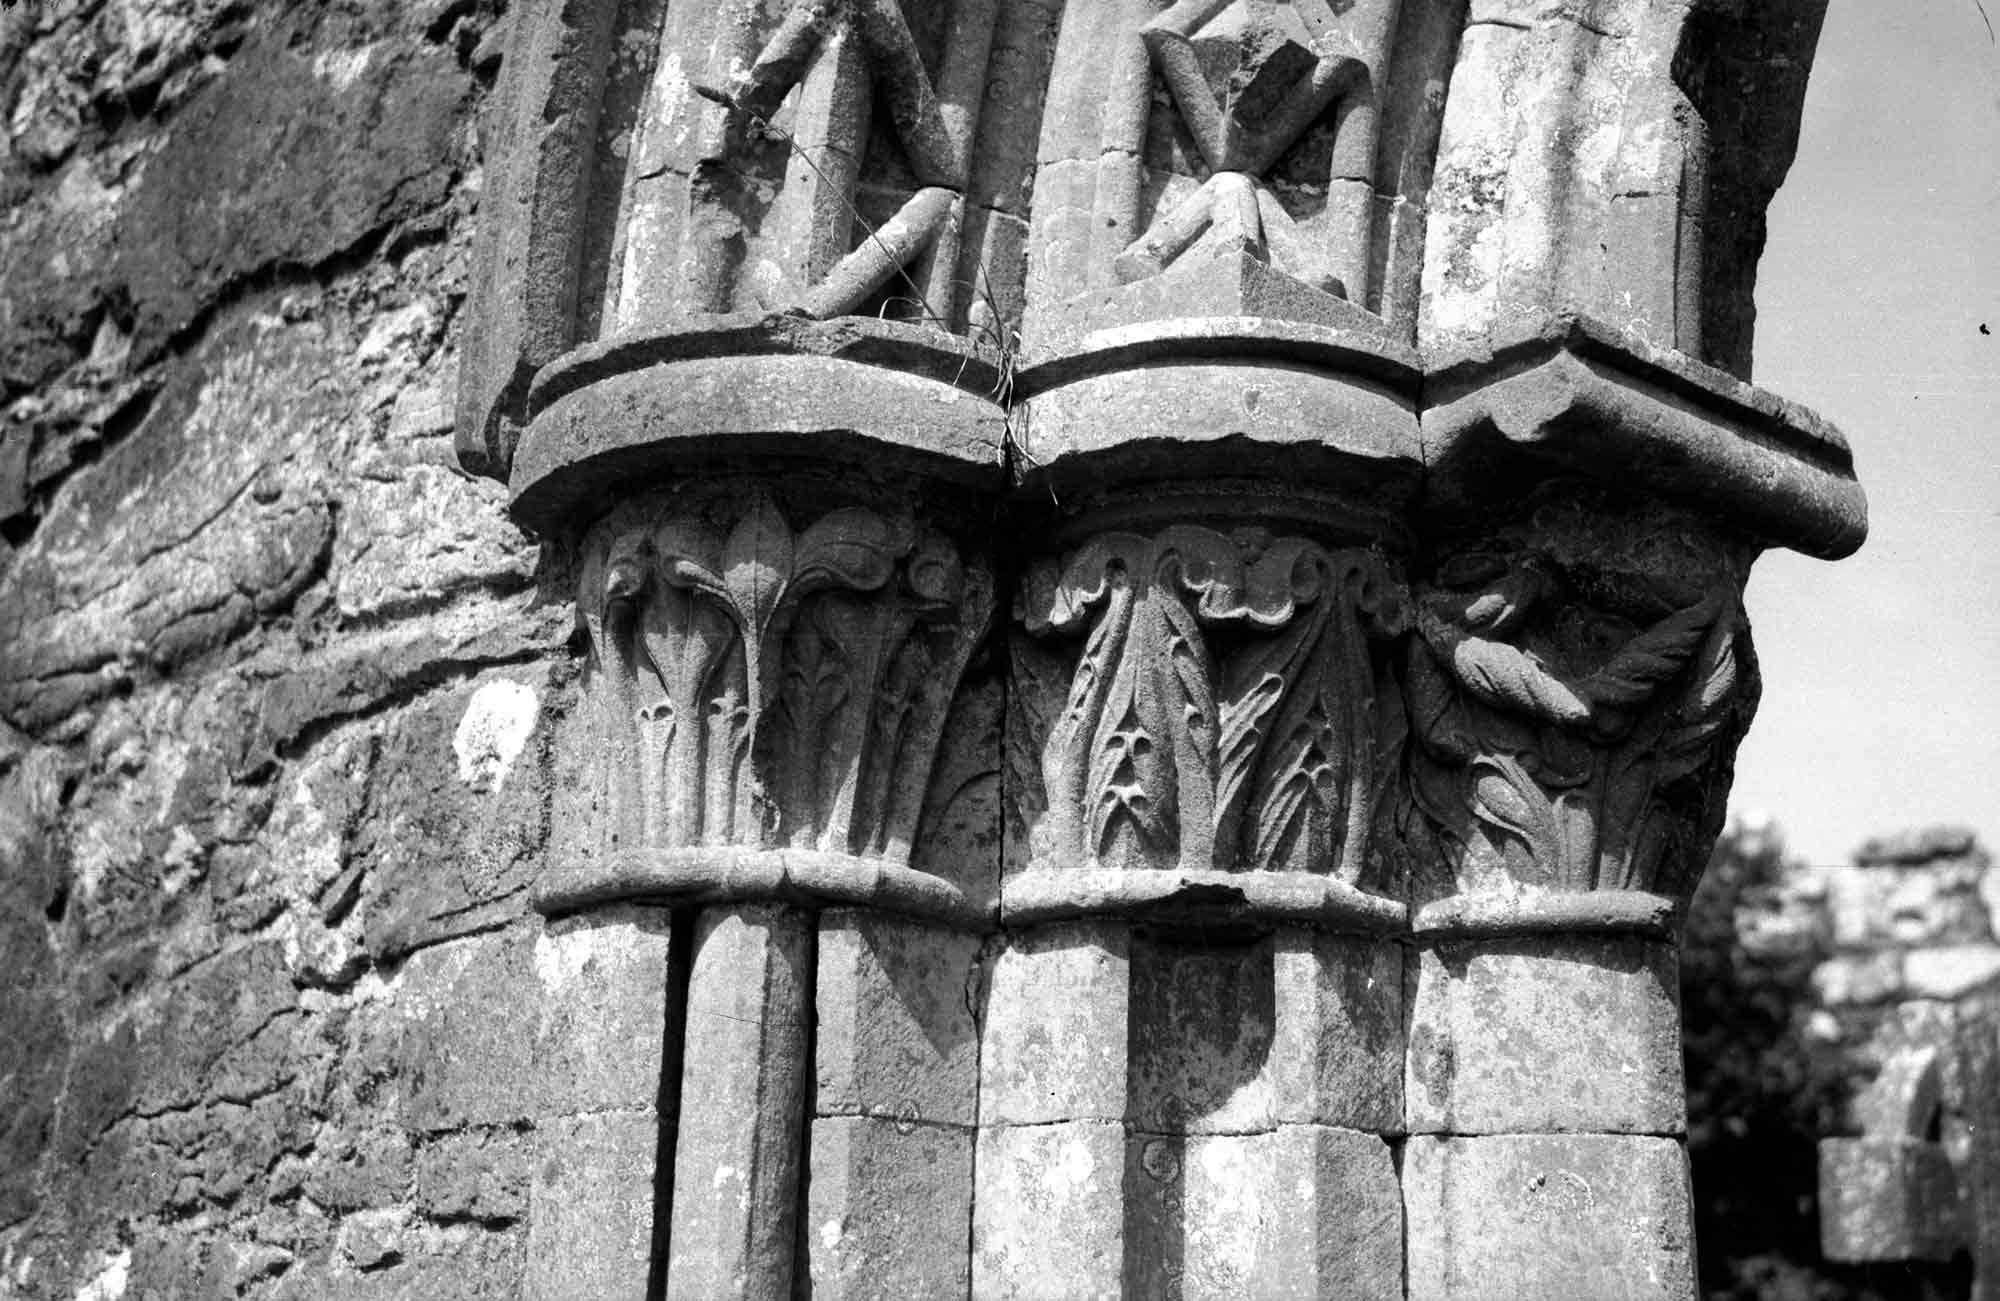 South doorway capitals